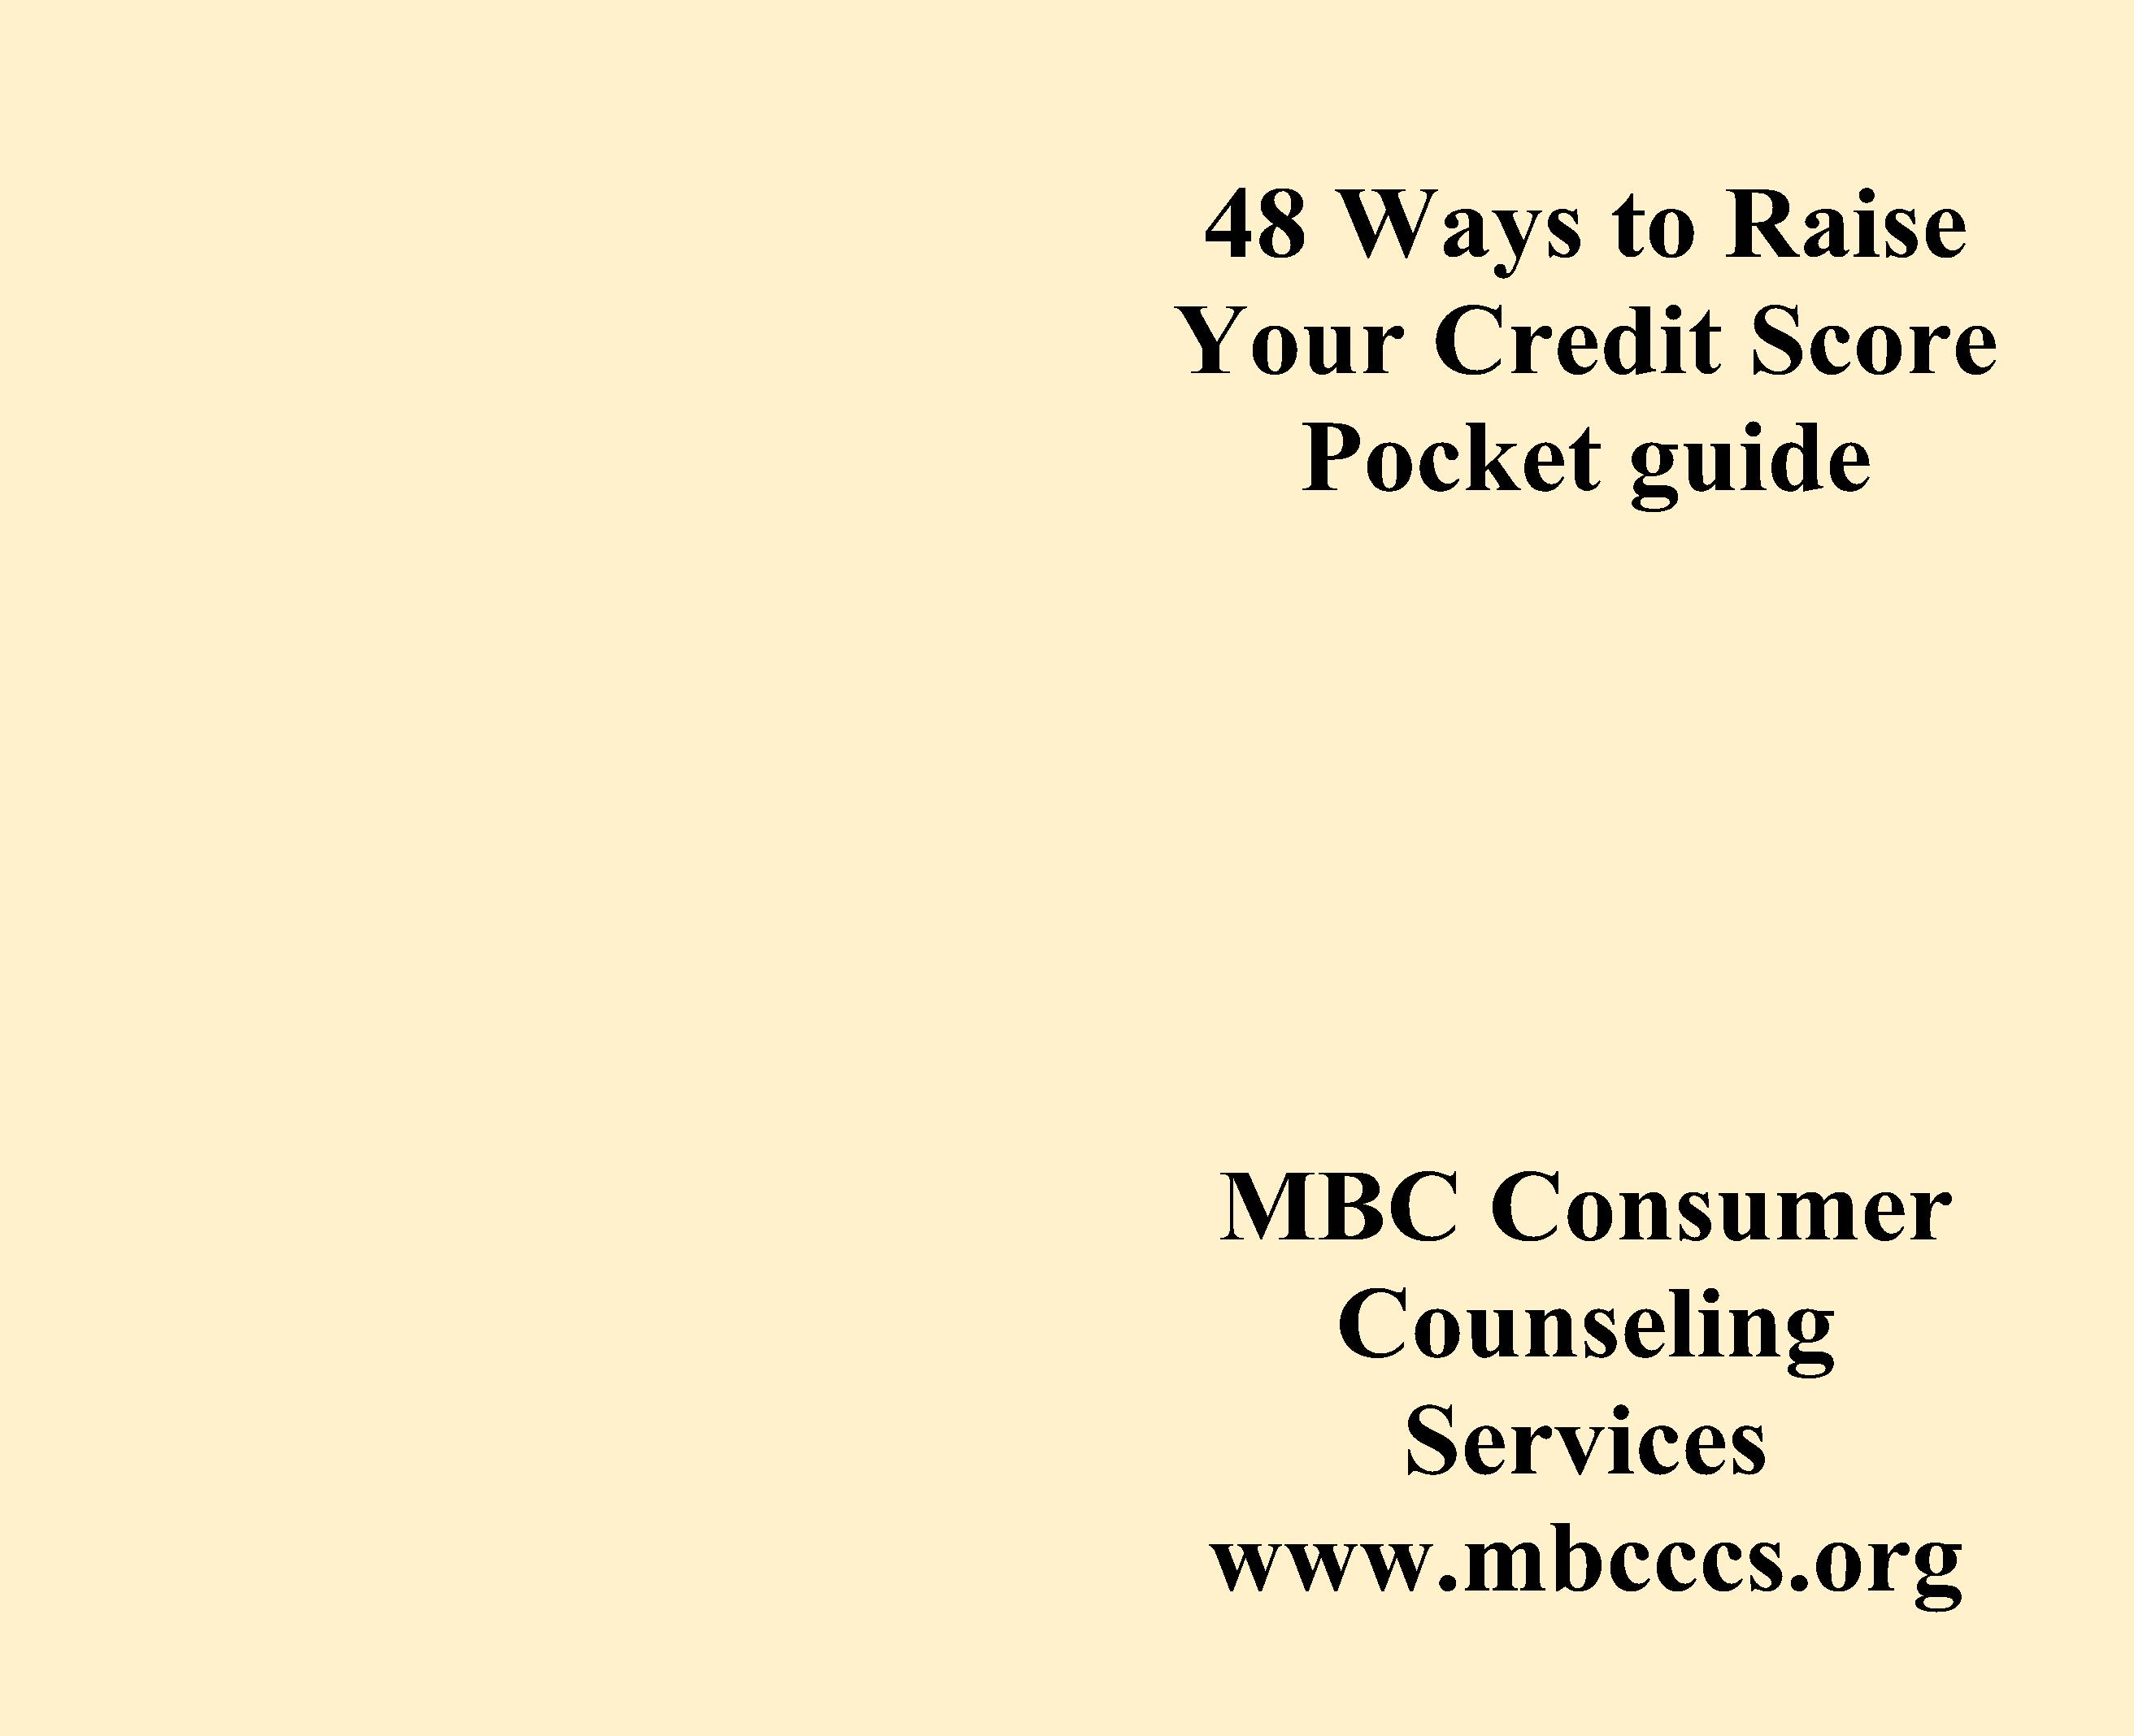 48 Ways to Raise Your Credit Score Pocket guide cover image